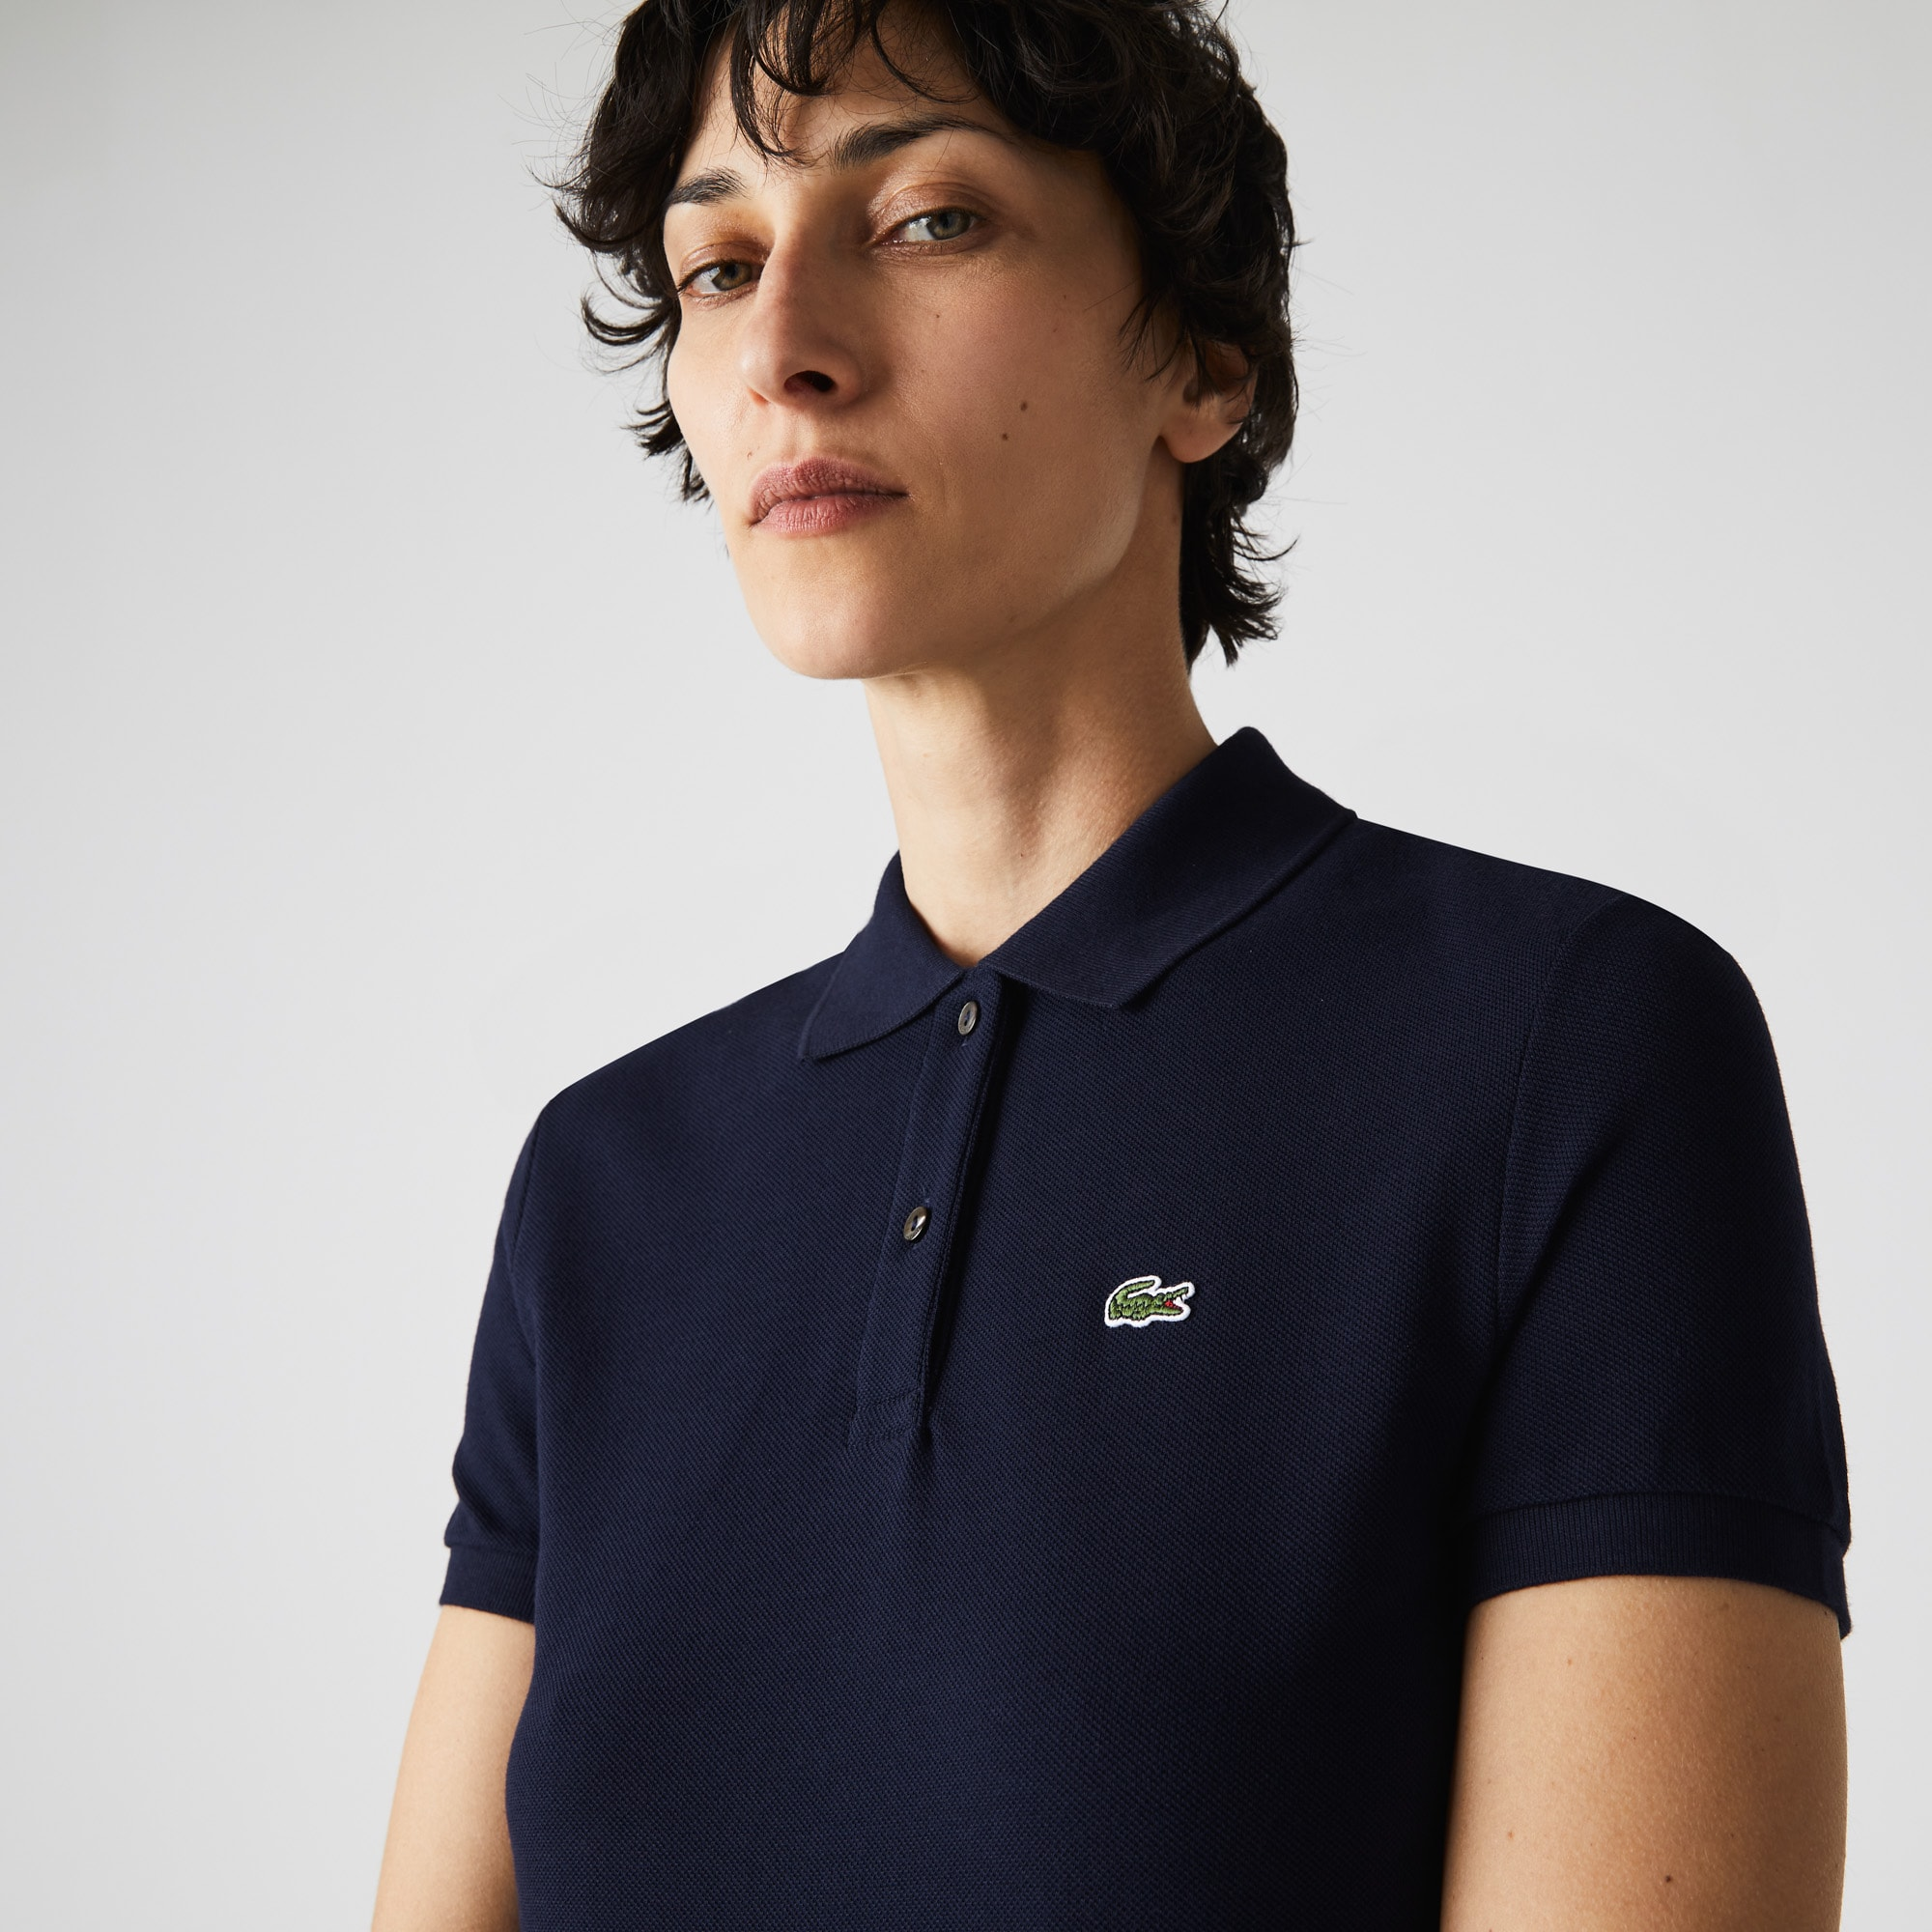 6dc7e97fe29e9c Women s Lacoste Classic Fit Soft Cotton Petit Piqué Polo Shirt ...